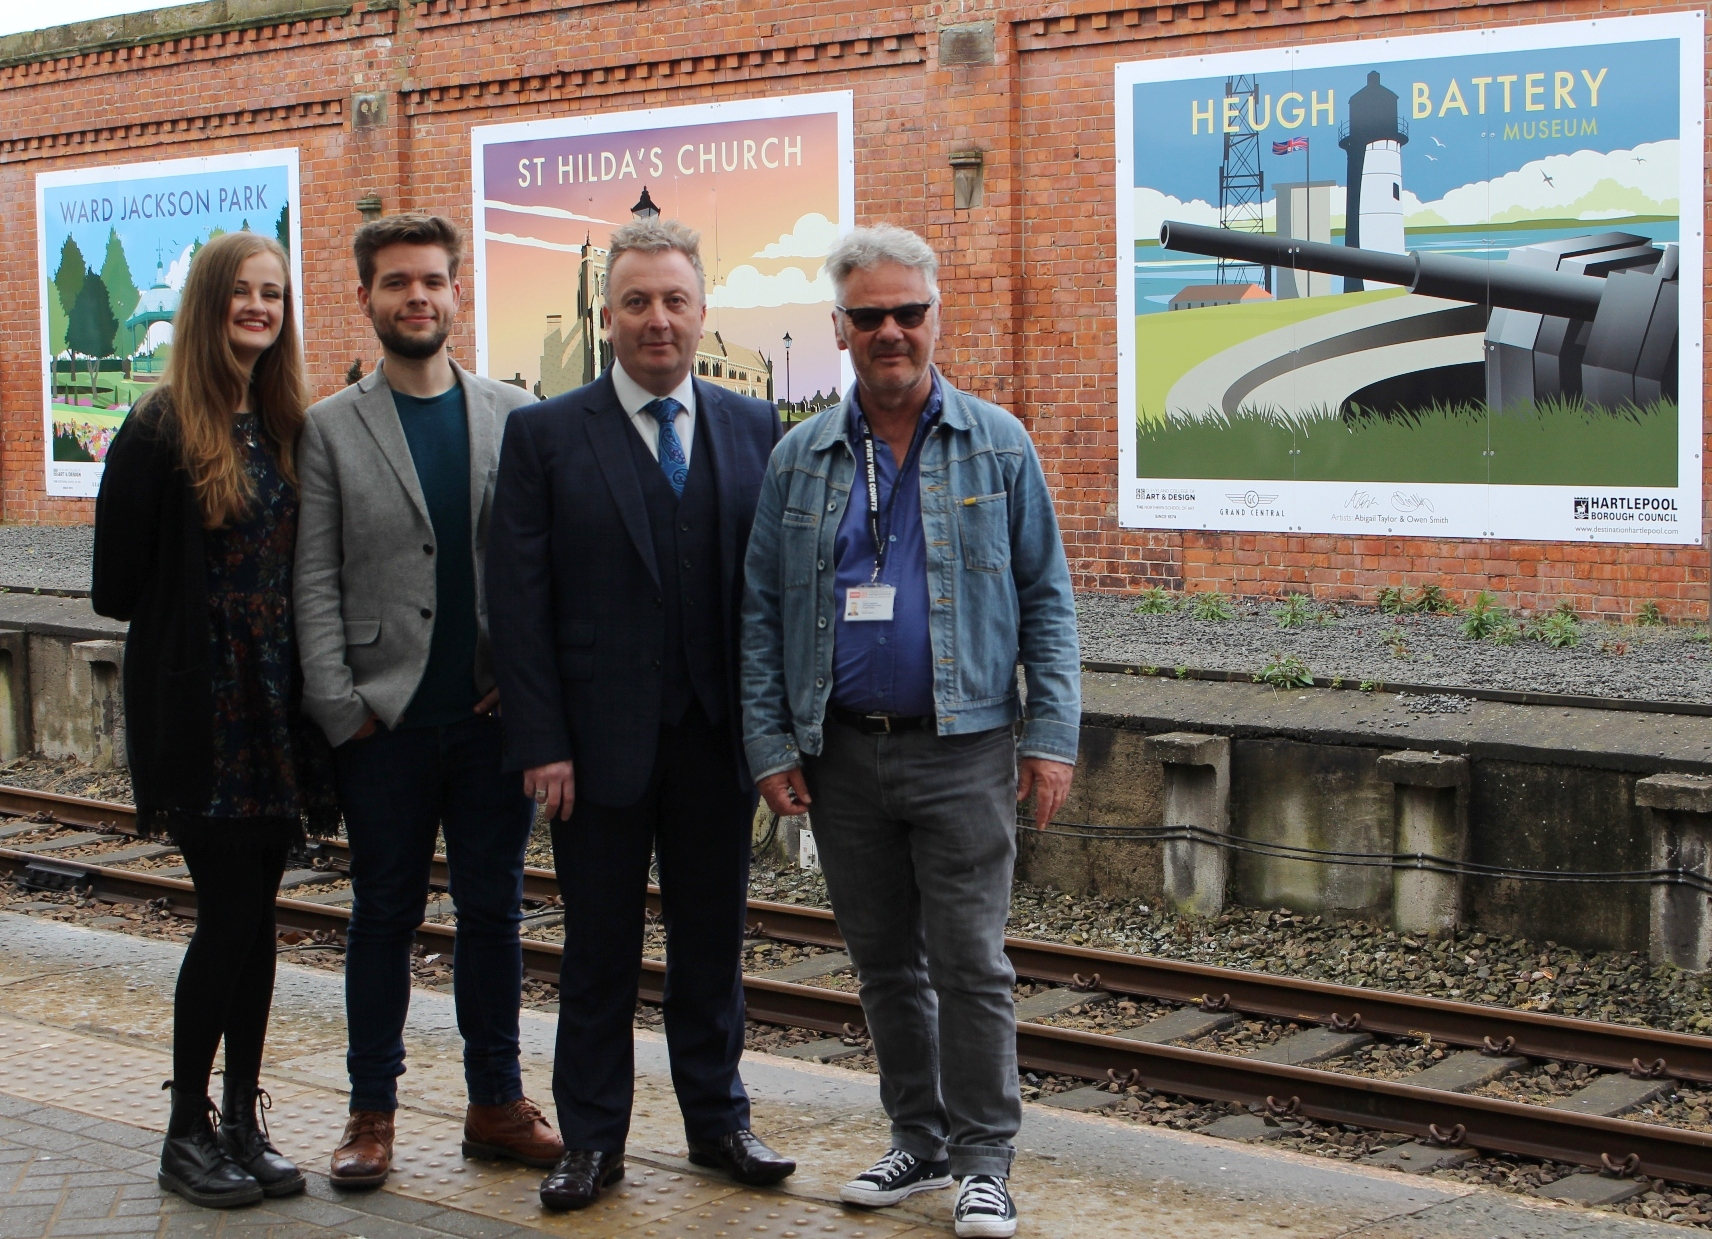 Pictured (L-R) are Abigail Taylor, Owen Smith, Councillor Christopher Akers-Belcher and Francis Fitzgerald, from Cleveland College of Art & Design.